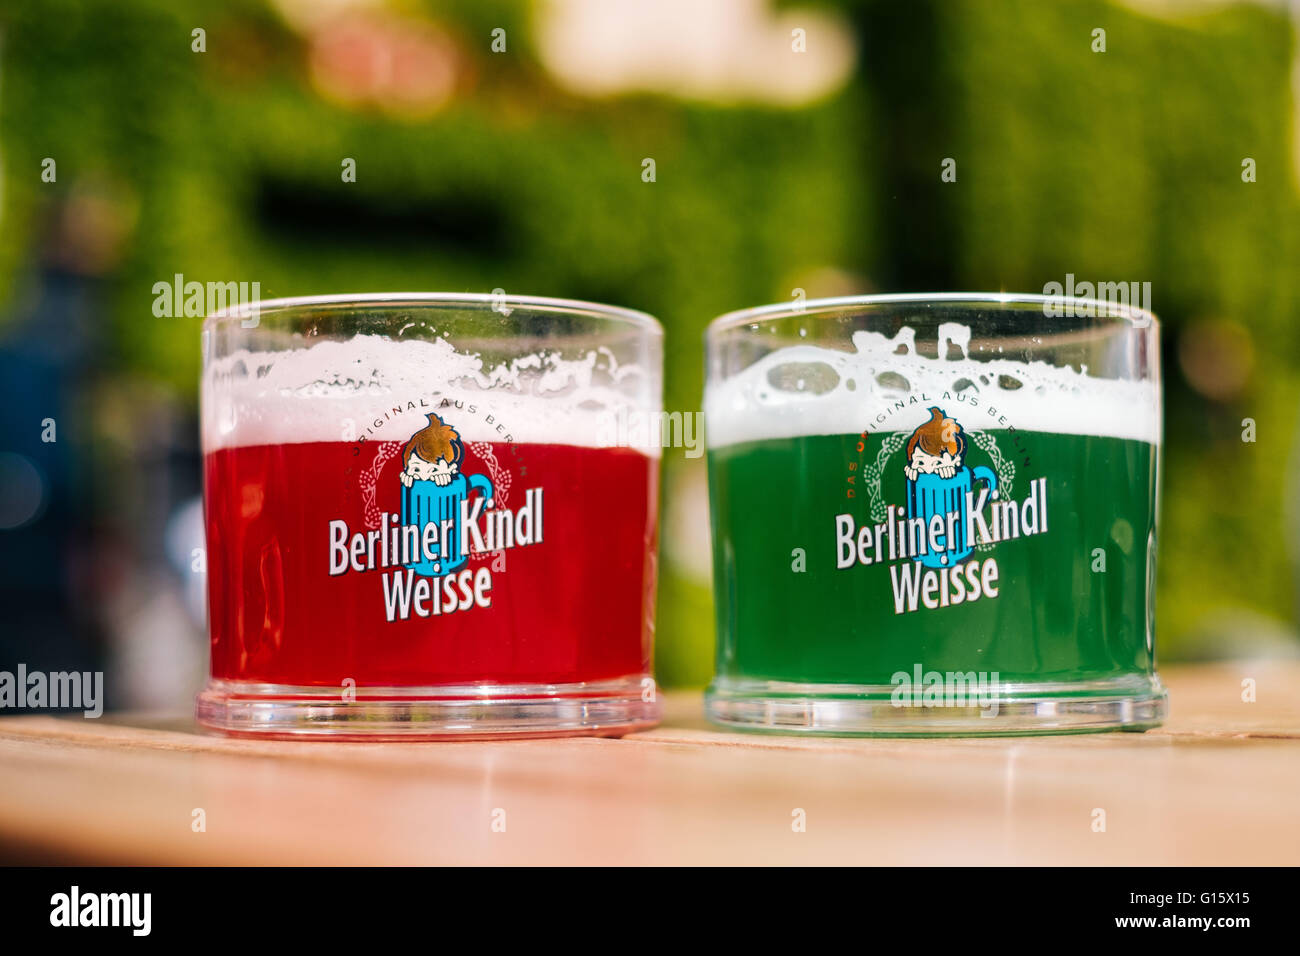 the berlin cult beer berliner kindl weisse with the flavor stock photo 104007041 alamy. Black Bedroom Furniture Sets. Home Design Ideas